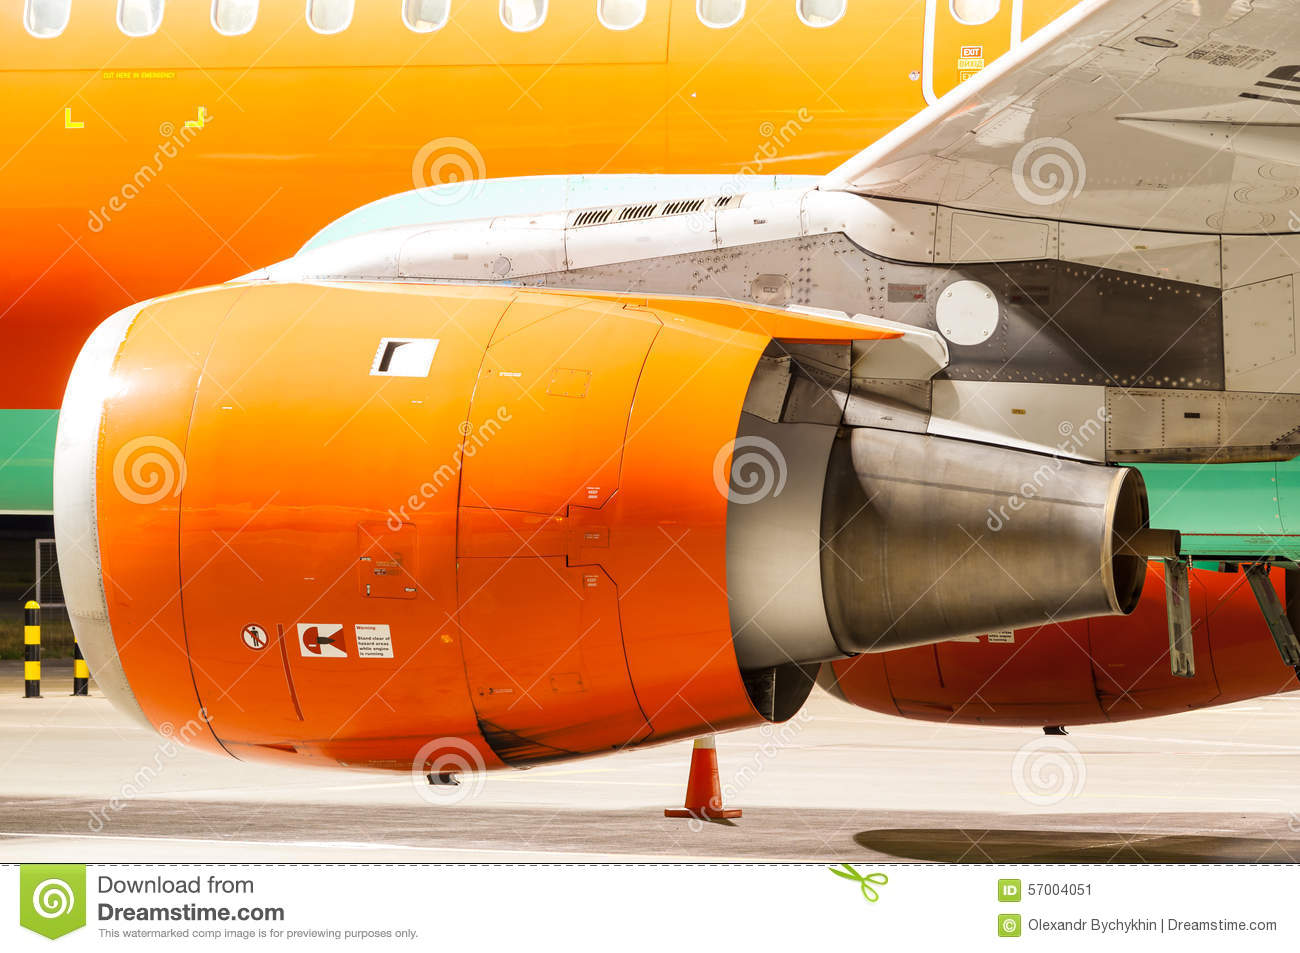 Engine of the airplane painted in orange. Close-up